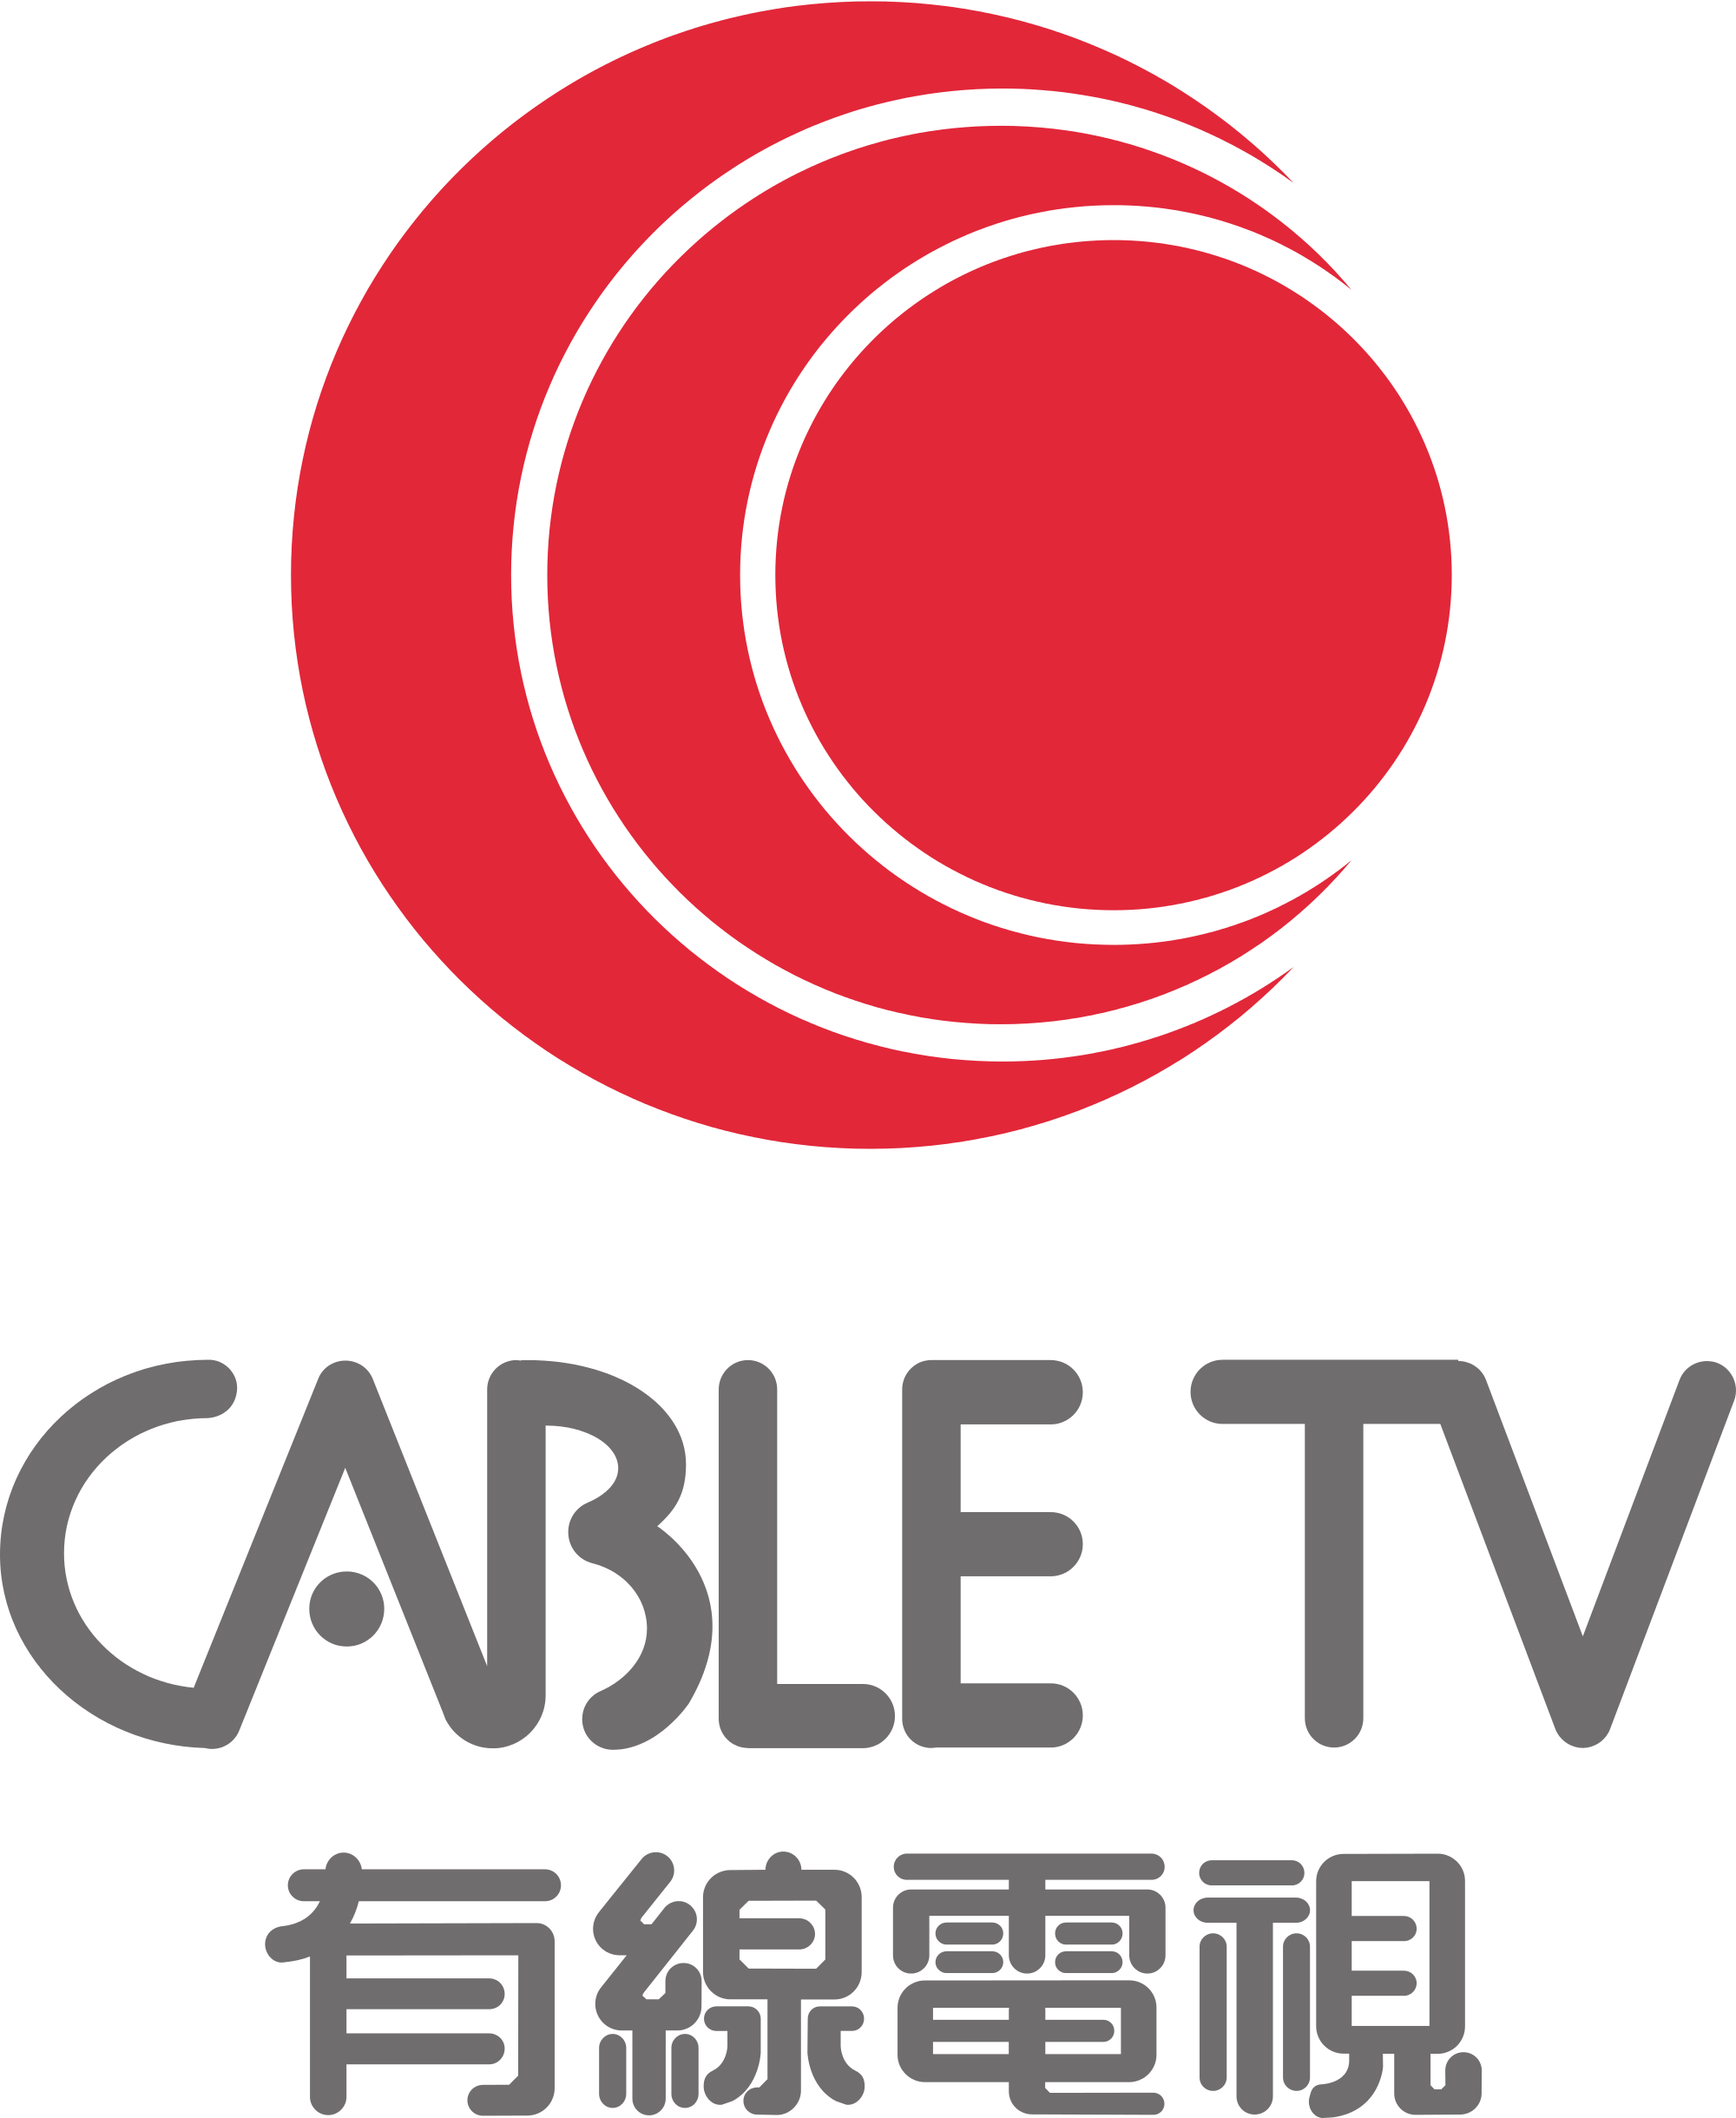 television clipart cable tv